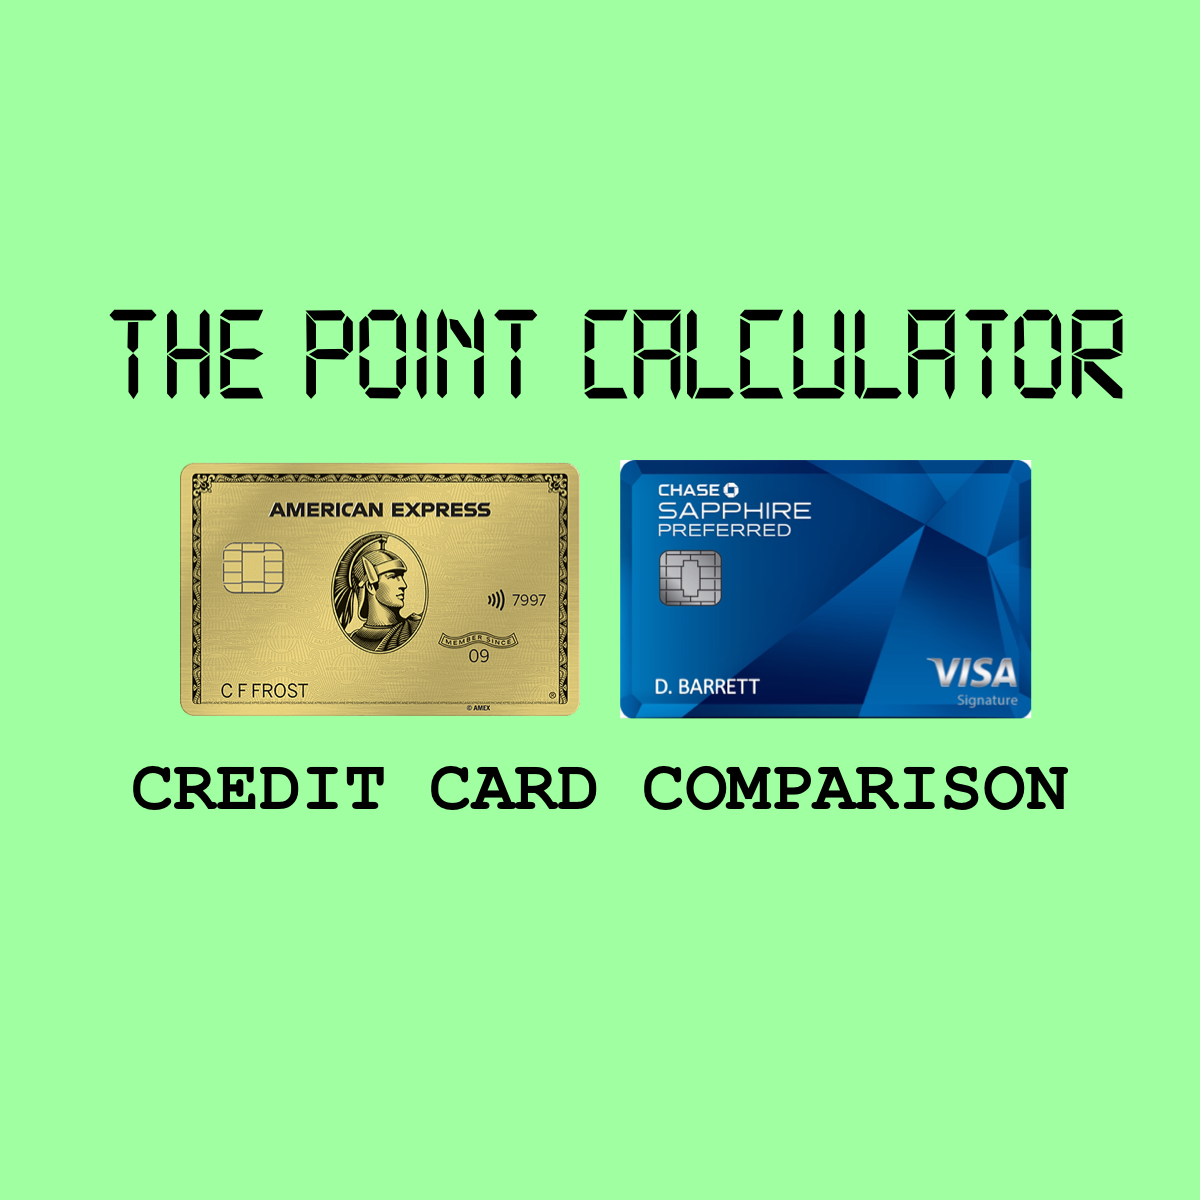 Amex Gold Vs Chase Sapphire Preferred Calculator Chase Sapphire Preferred Chase Sapphire American Express Gold